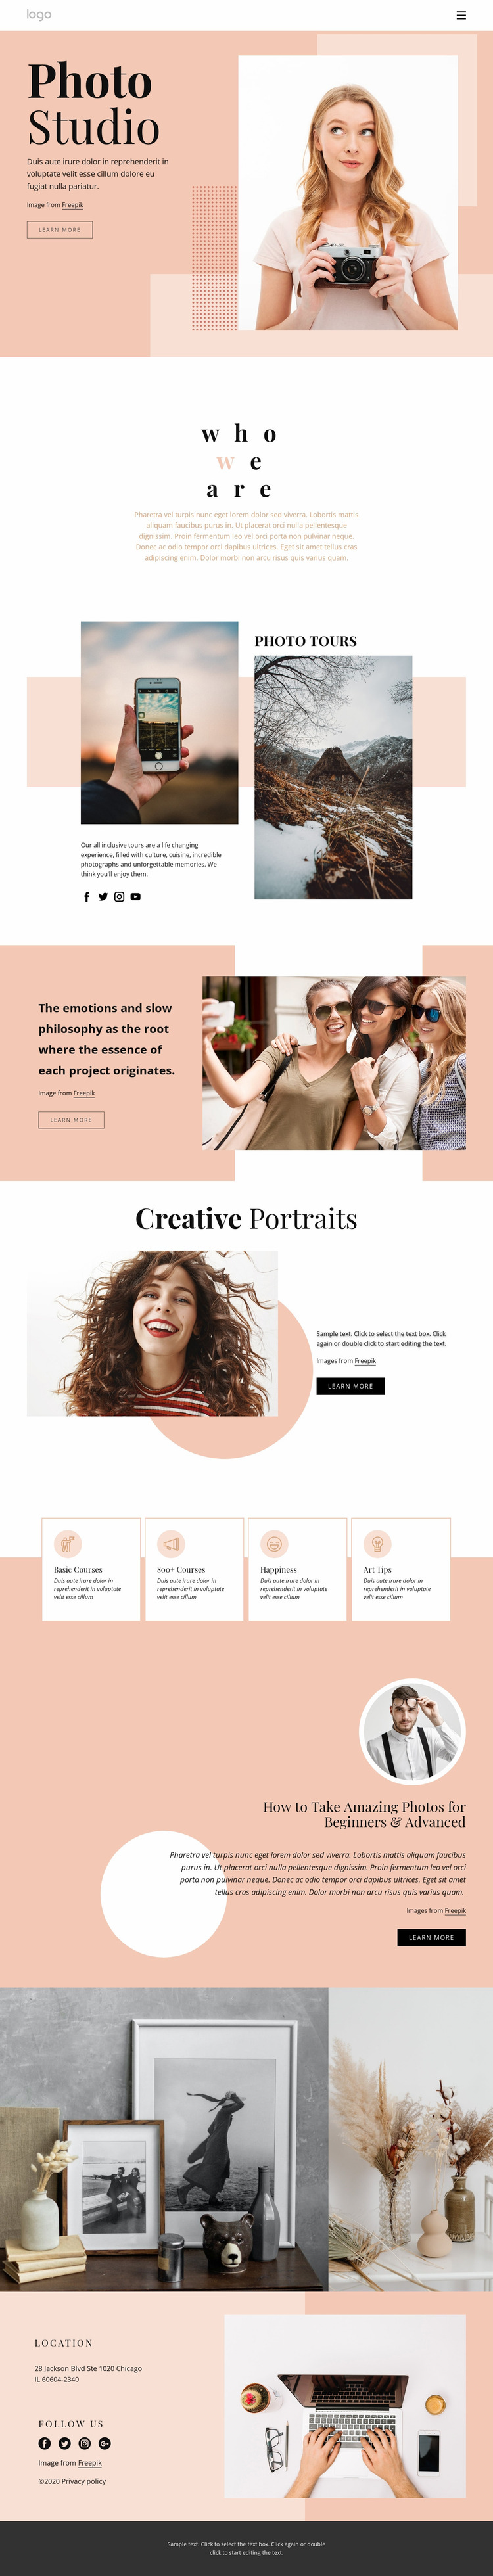 Photography courses Website Mockup